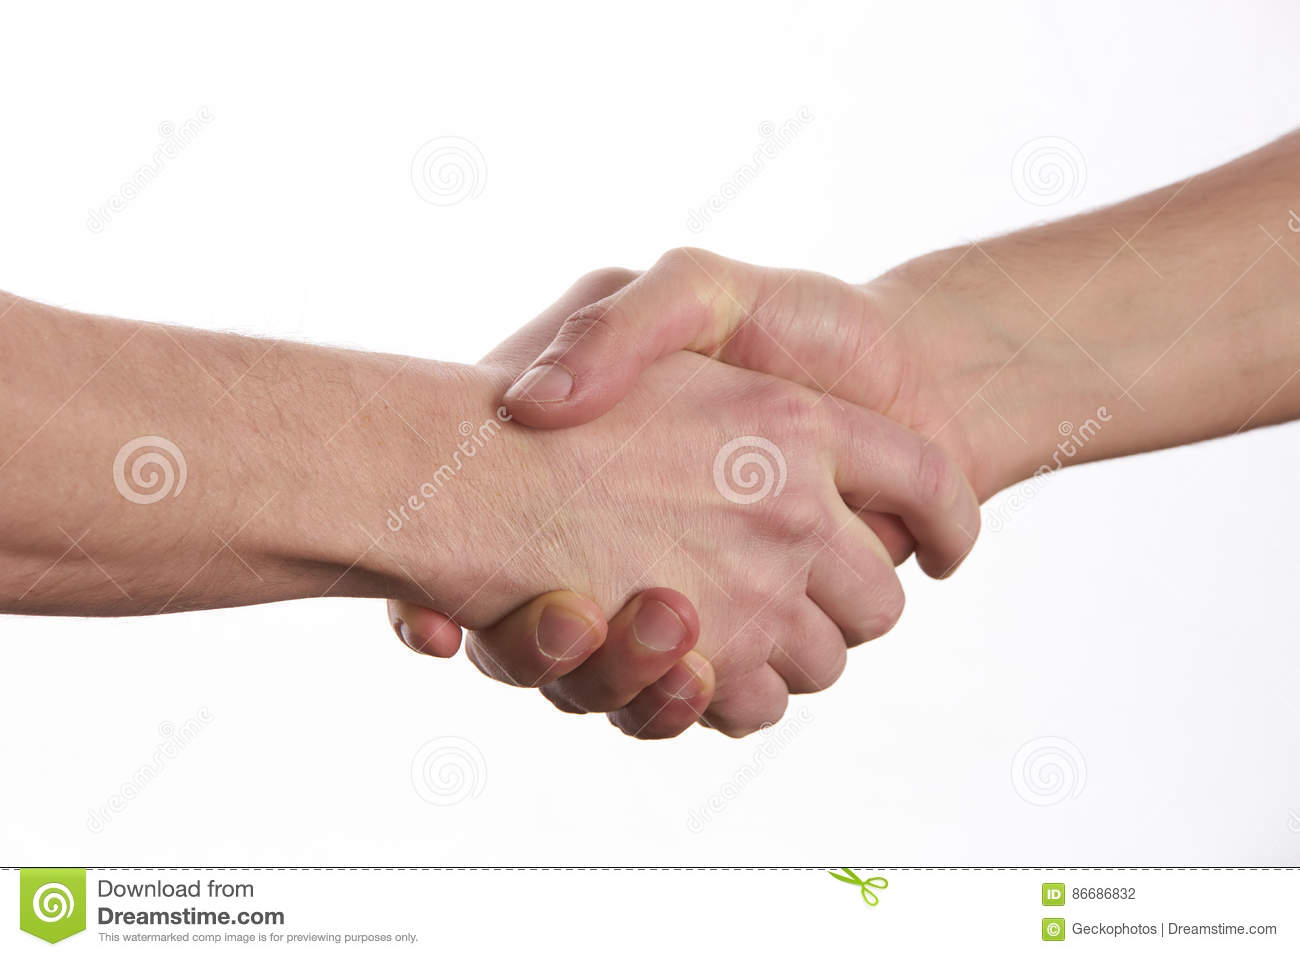 Two men shaking hands over isolated white background.